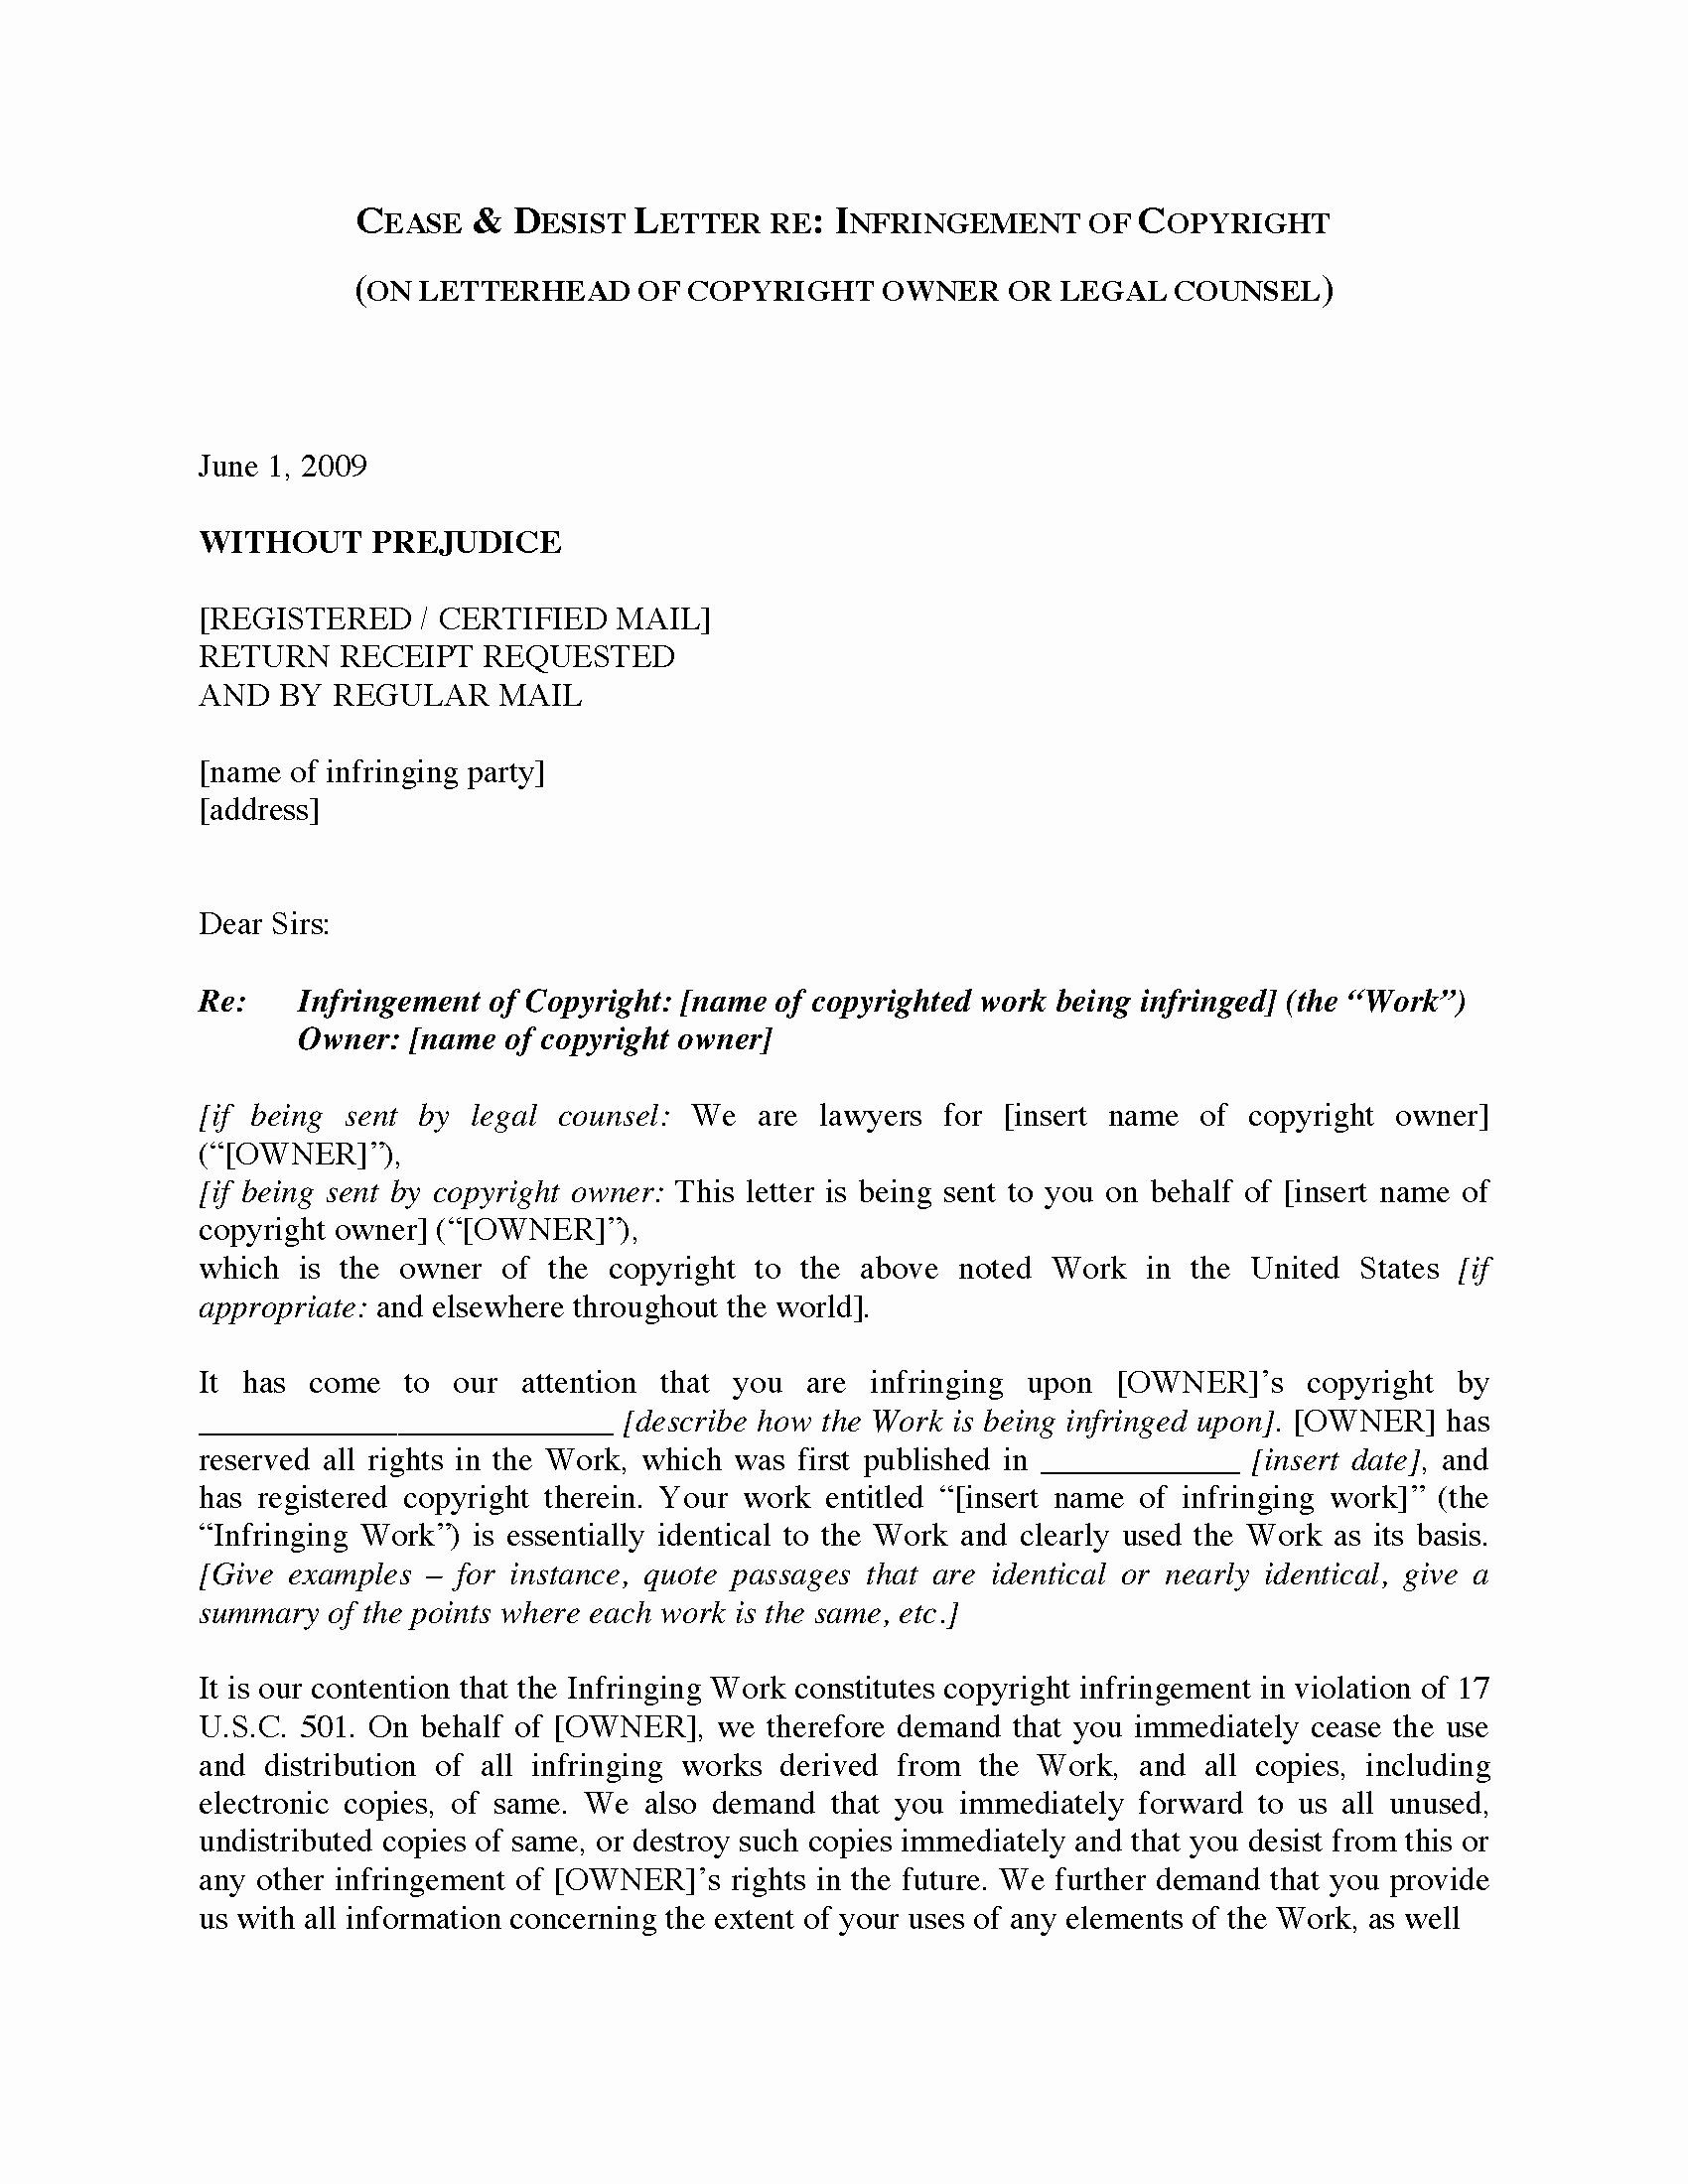 21+ Cease and desist letter template uk ideas in 2021